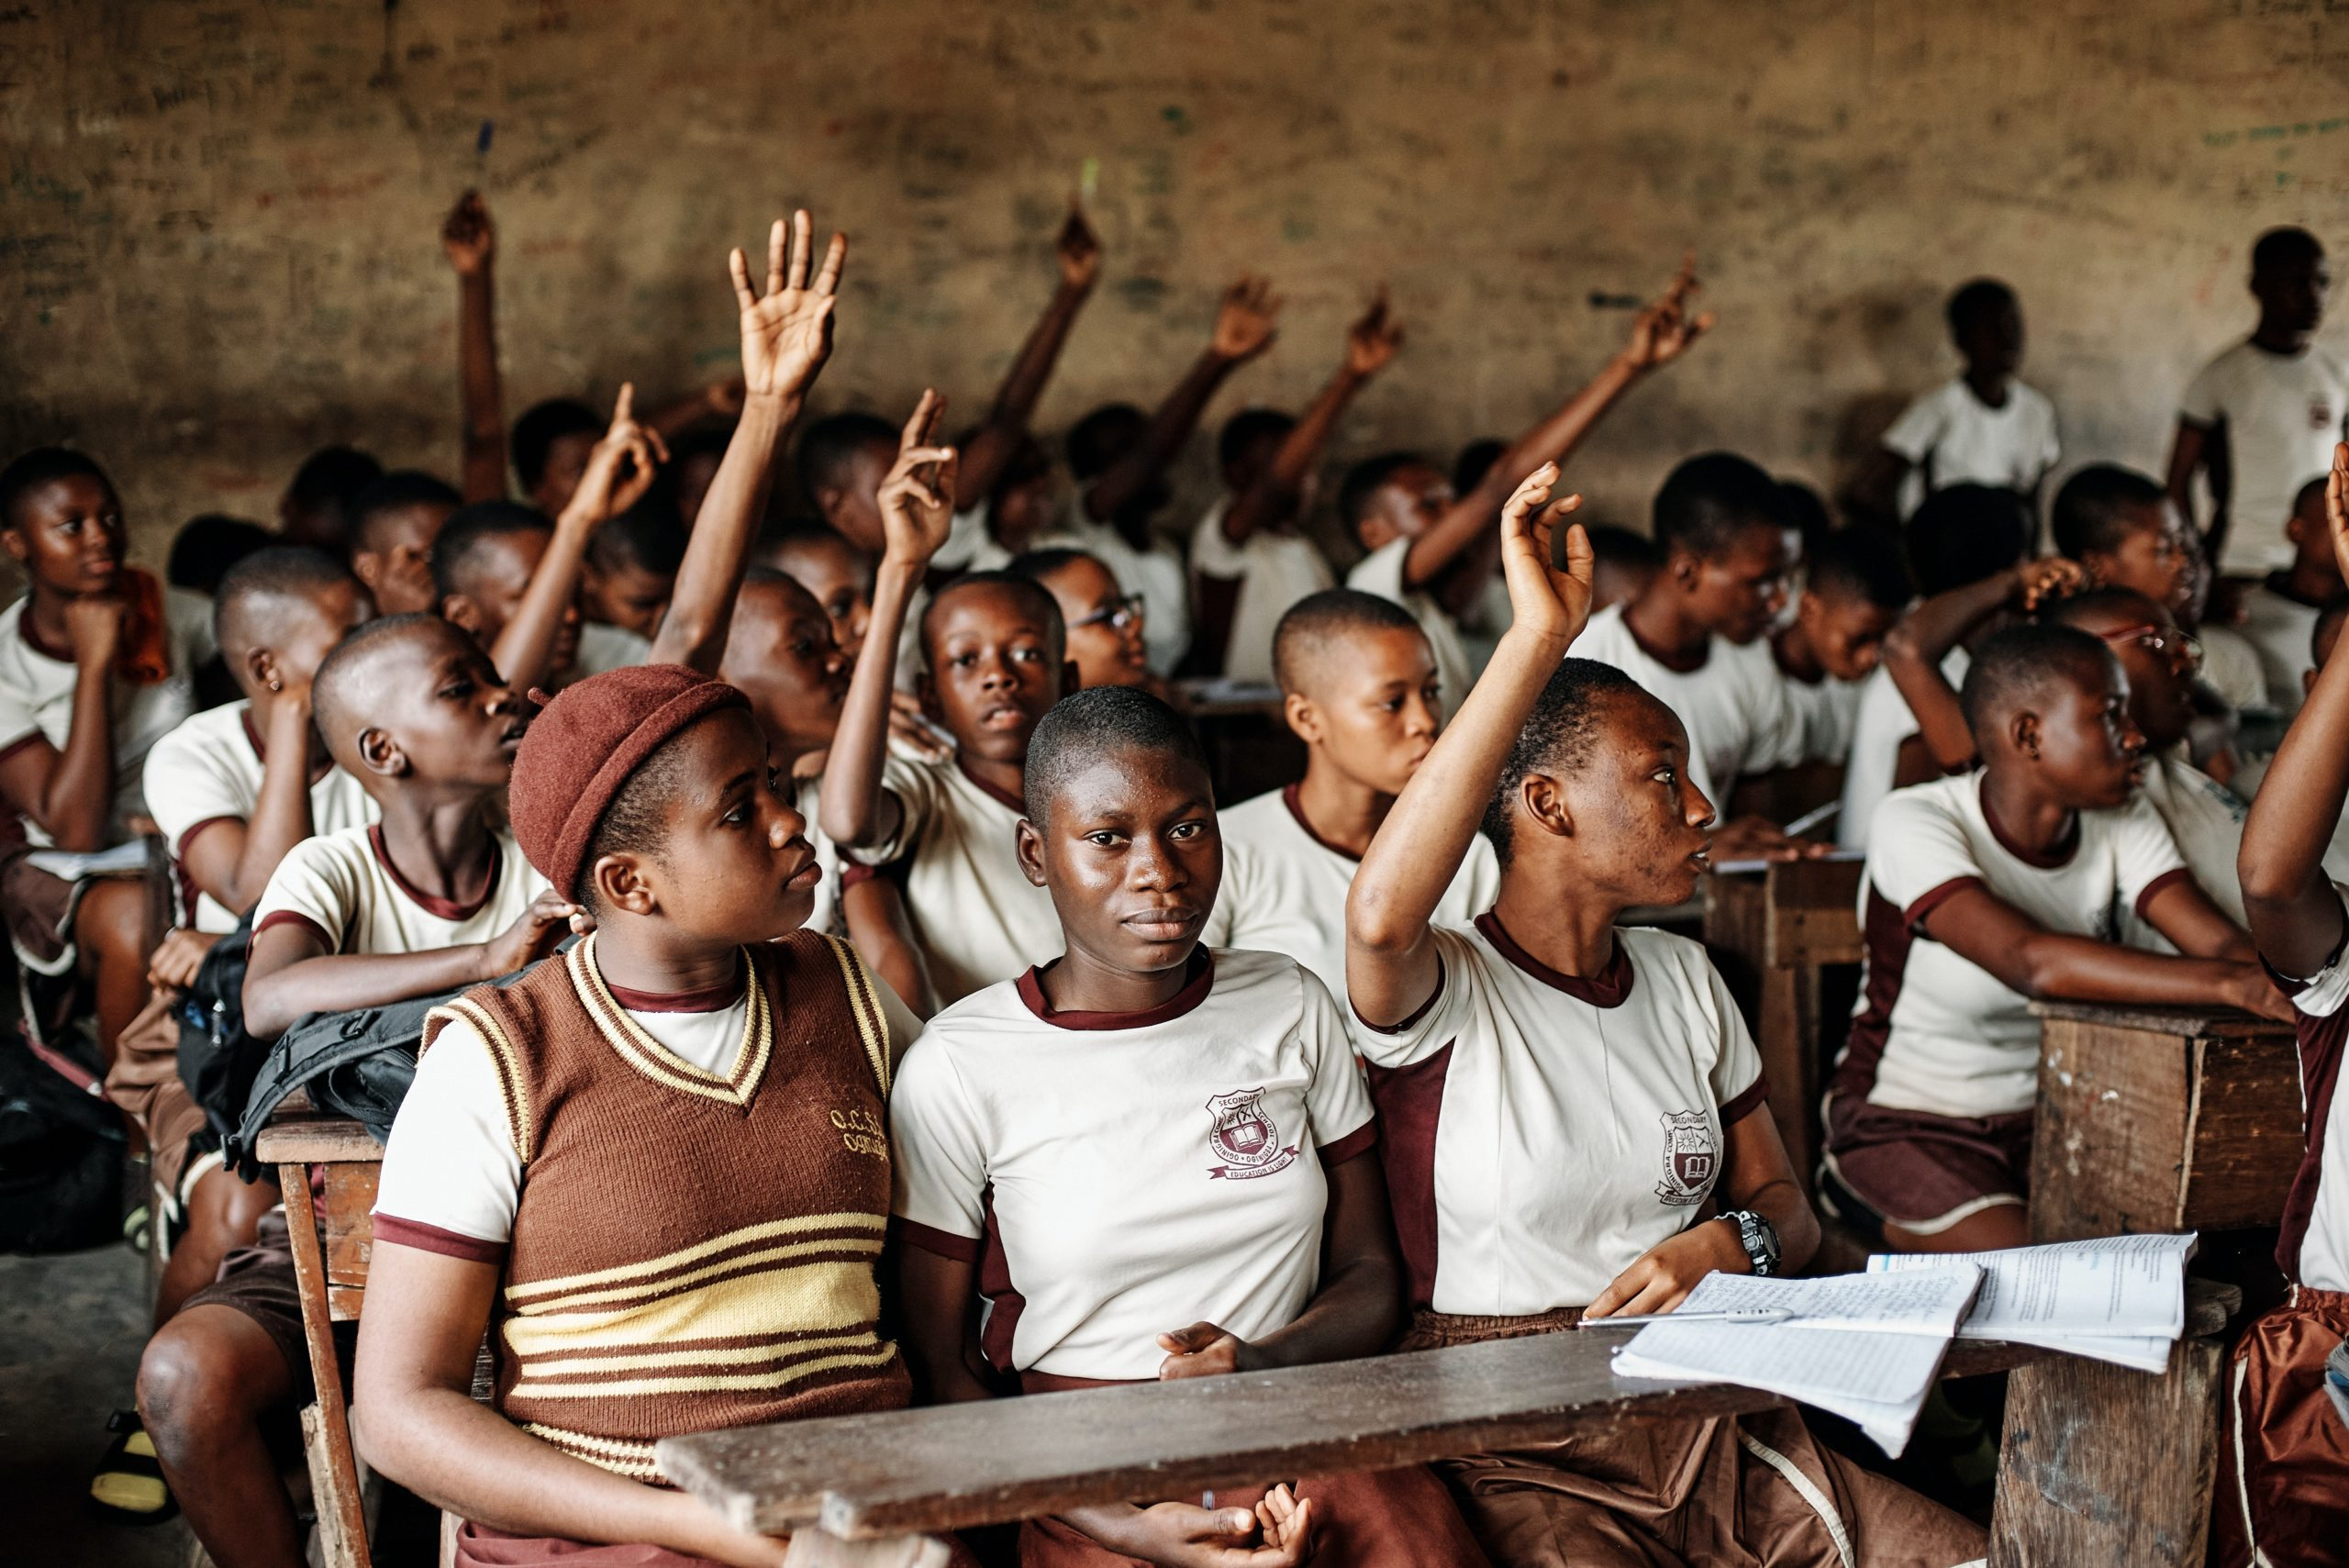 Picture of a classroom in a developing country, filled with students